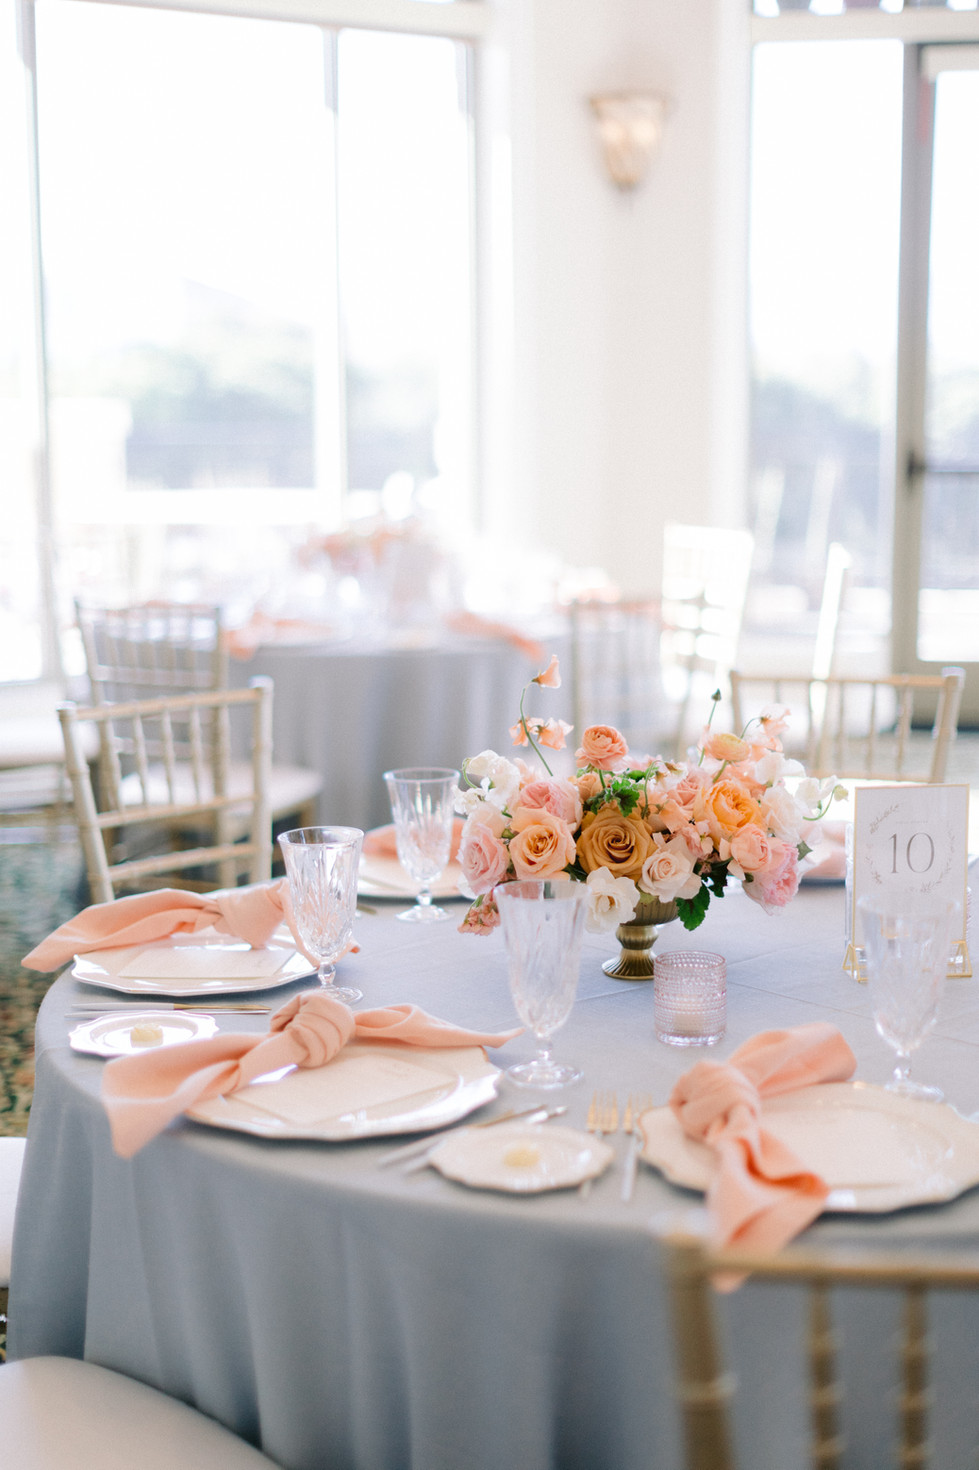 Peach and gold wedding centerpiece. Photo: Susie and Will